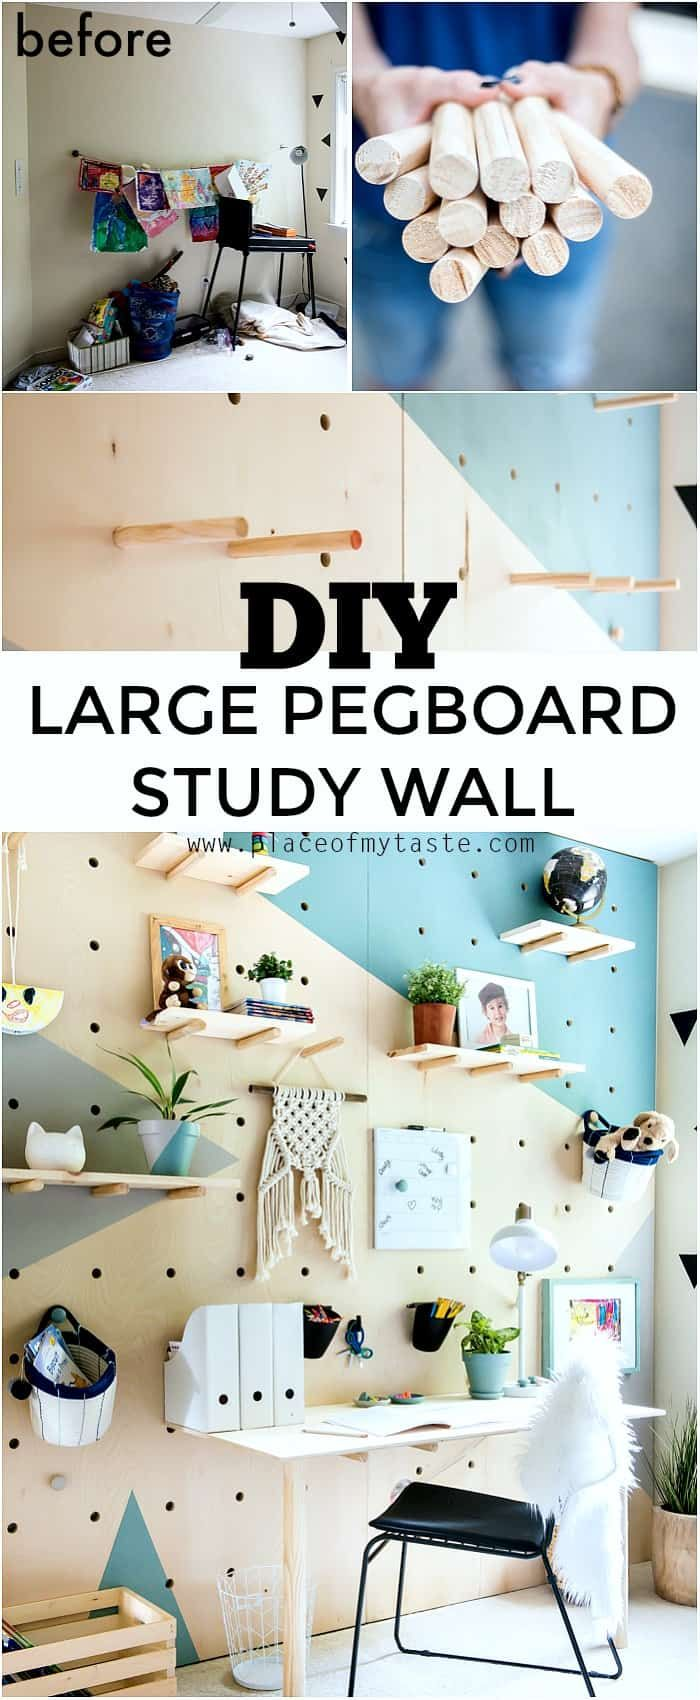 DIY PLYWOOD PEGBOARD WALL. SO COOL AND CHIC! Place Of My Taste | Home decor | Simple DIY |Eclectic home decor | Interior design| DIY projects | H